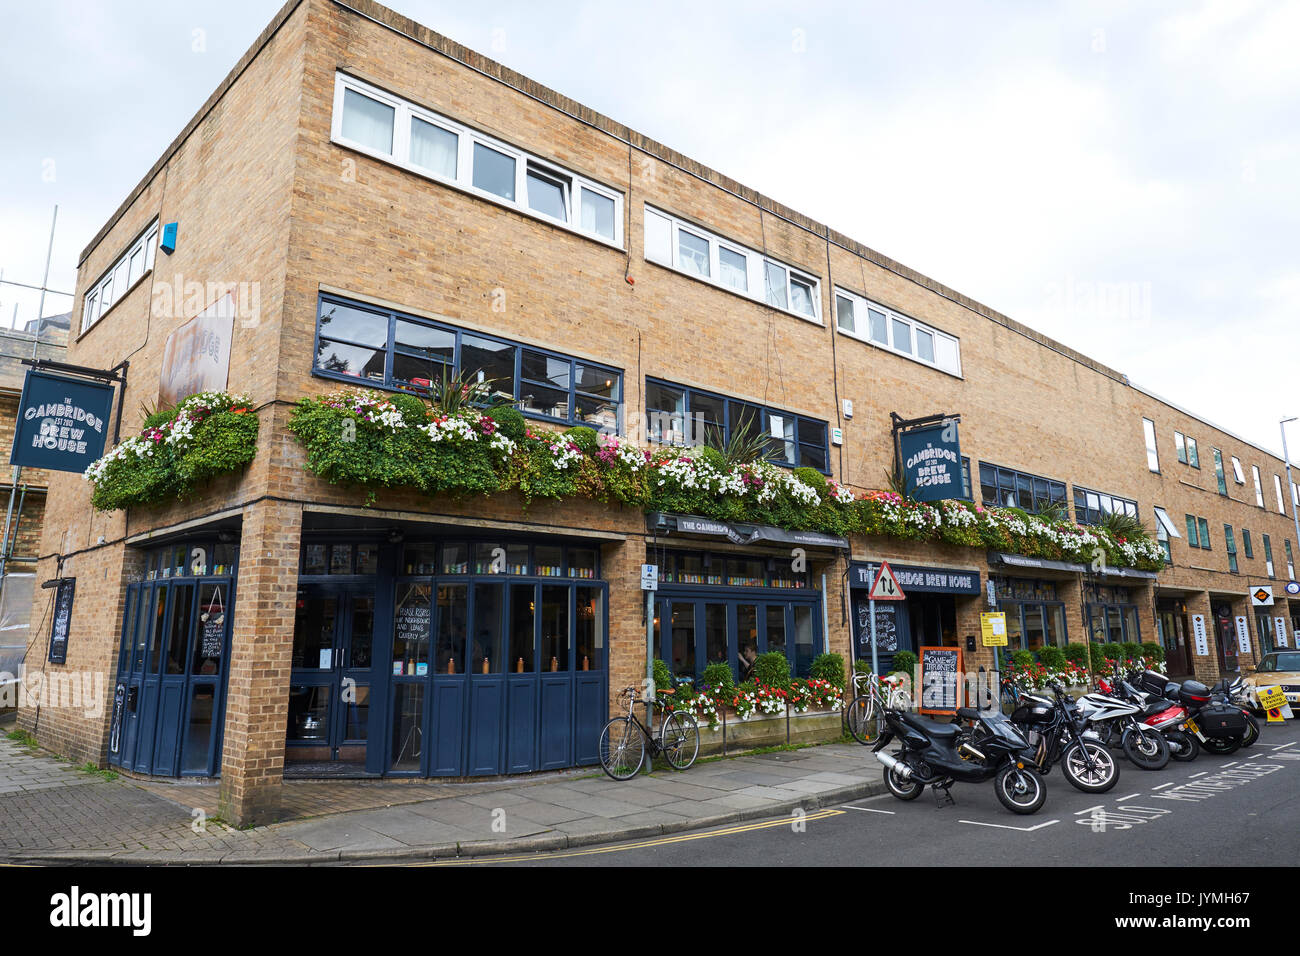 The Cambridge Brew House A Pub With Its Own Micro Brewery, King Street, Cambridge, UK - Stock Image